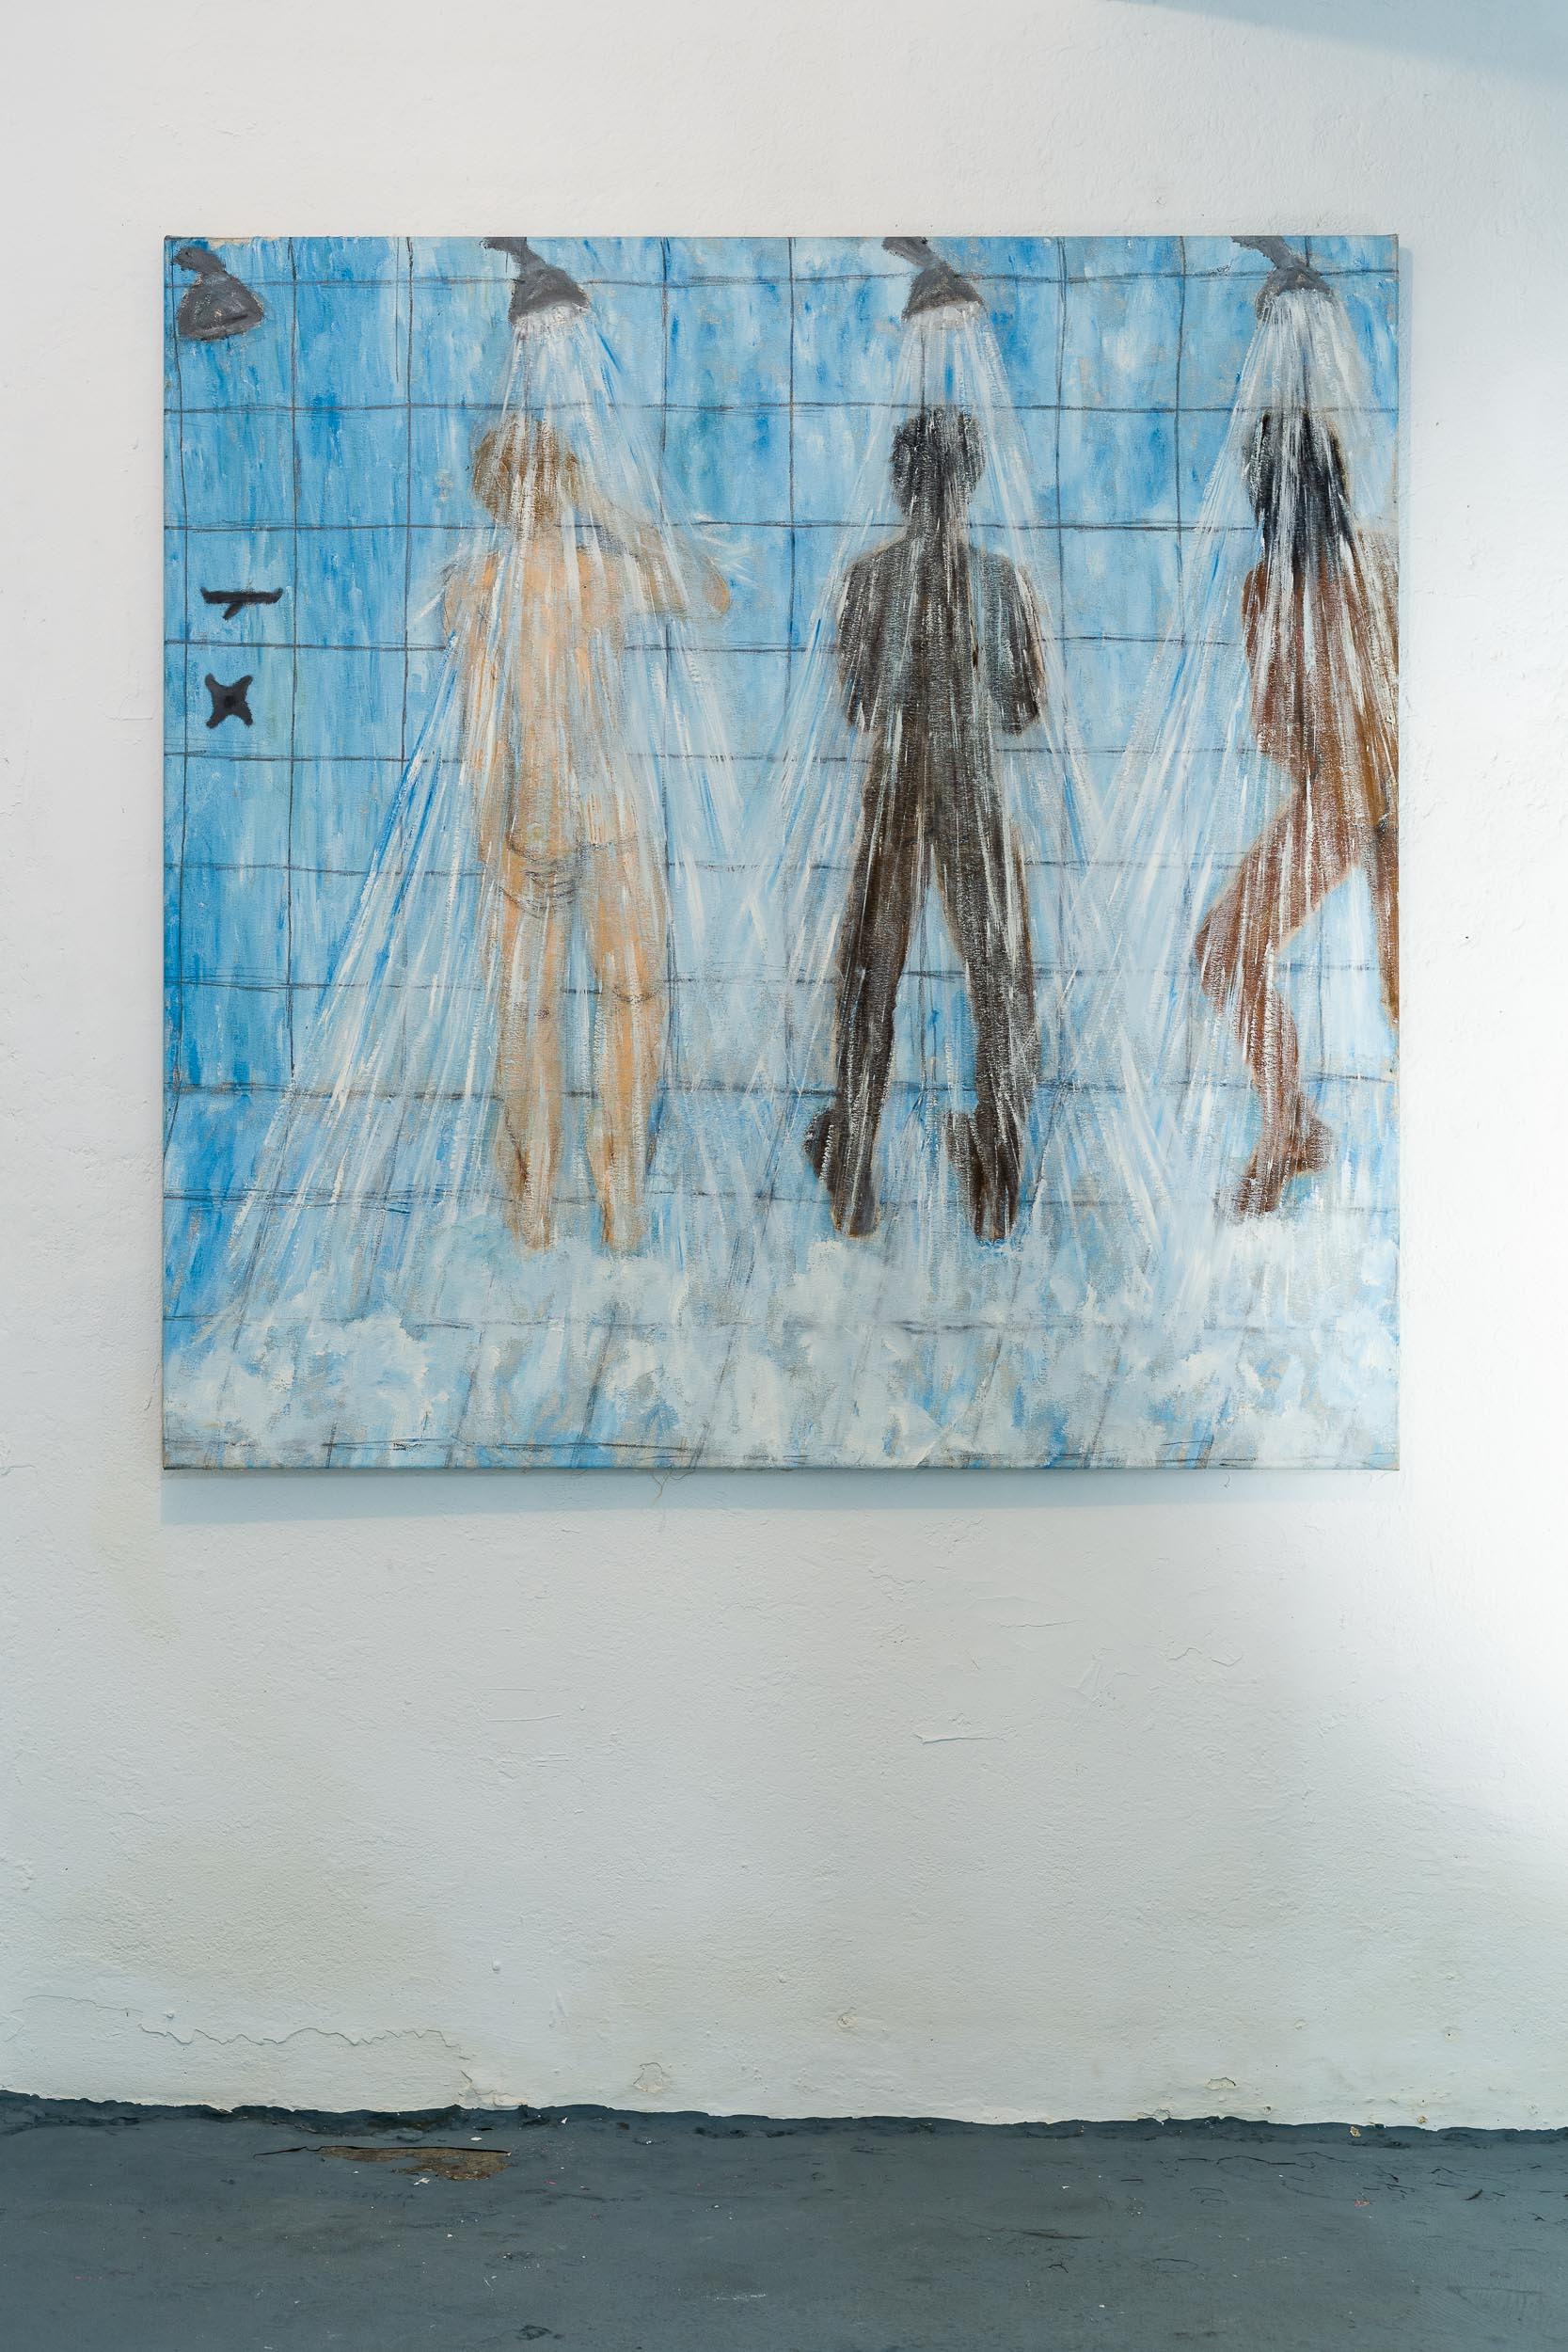 Dieter Hall,  3 men,  2006, Oil on canvas, 135 x 135 cm  Photo: Kilian Bannwart